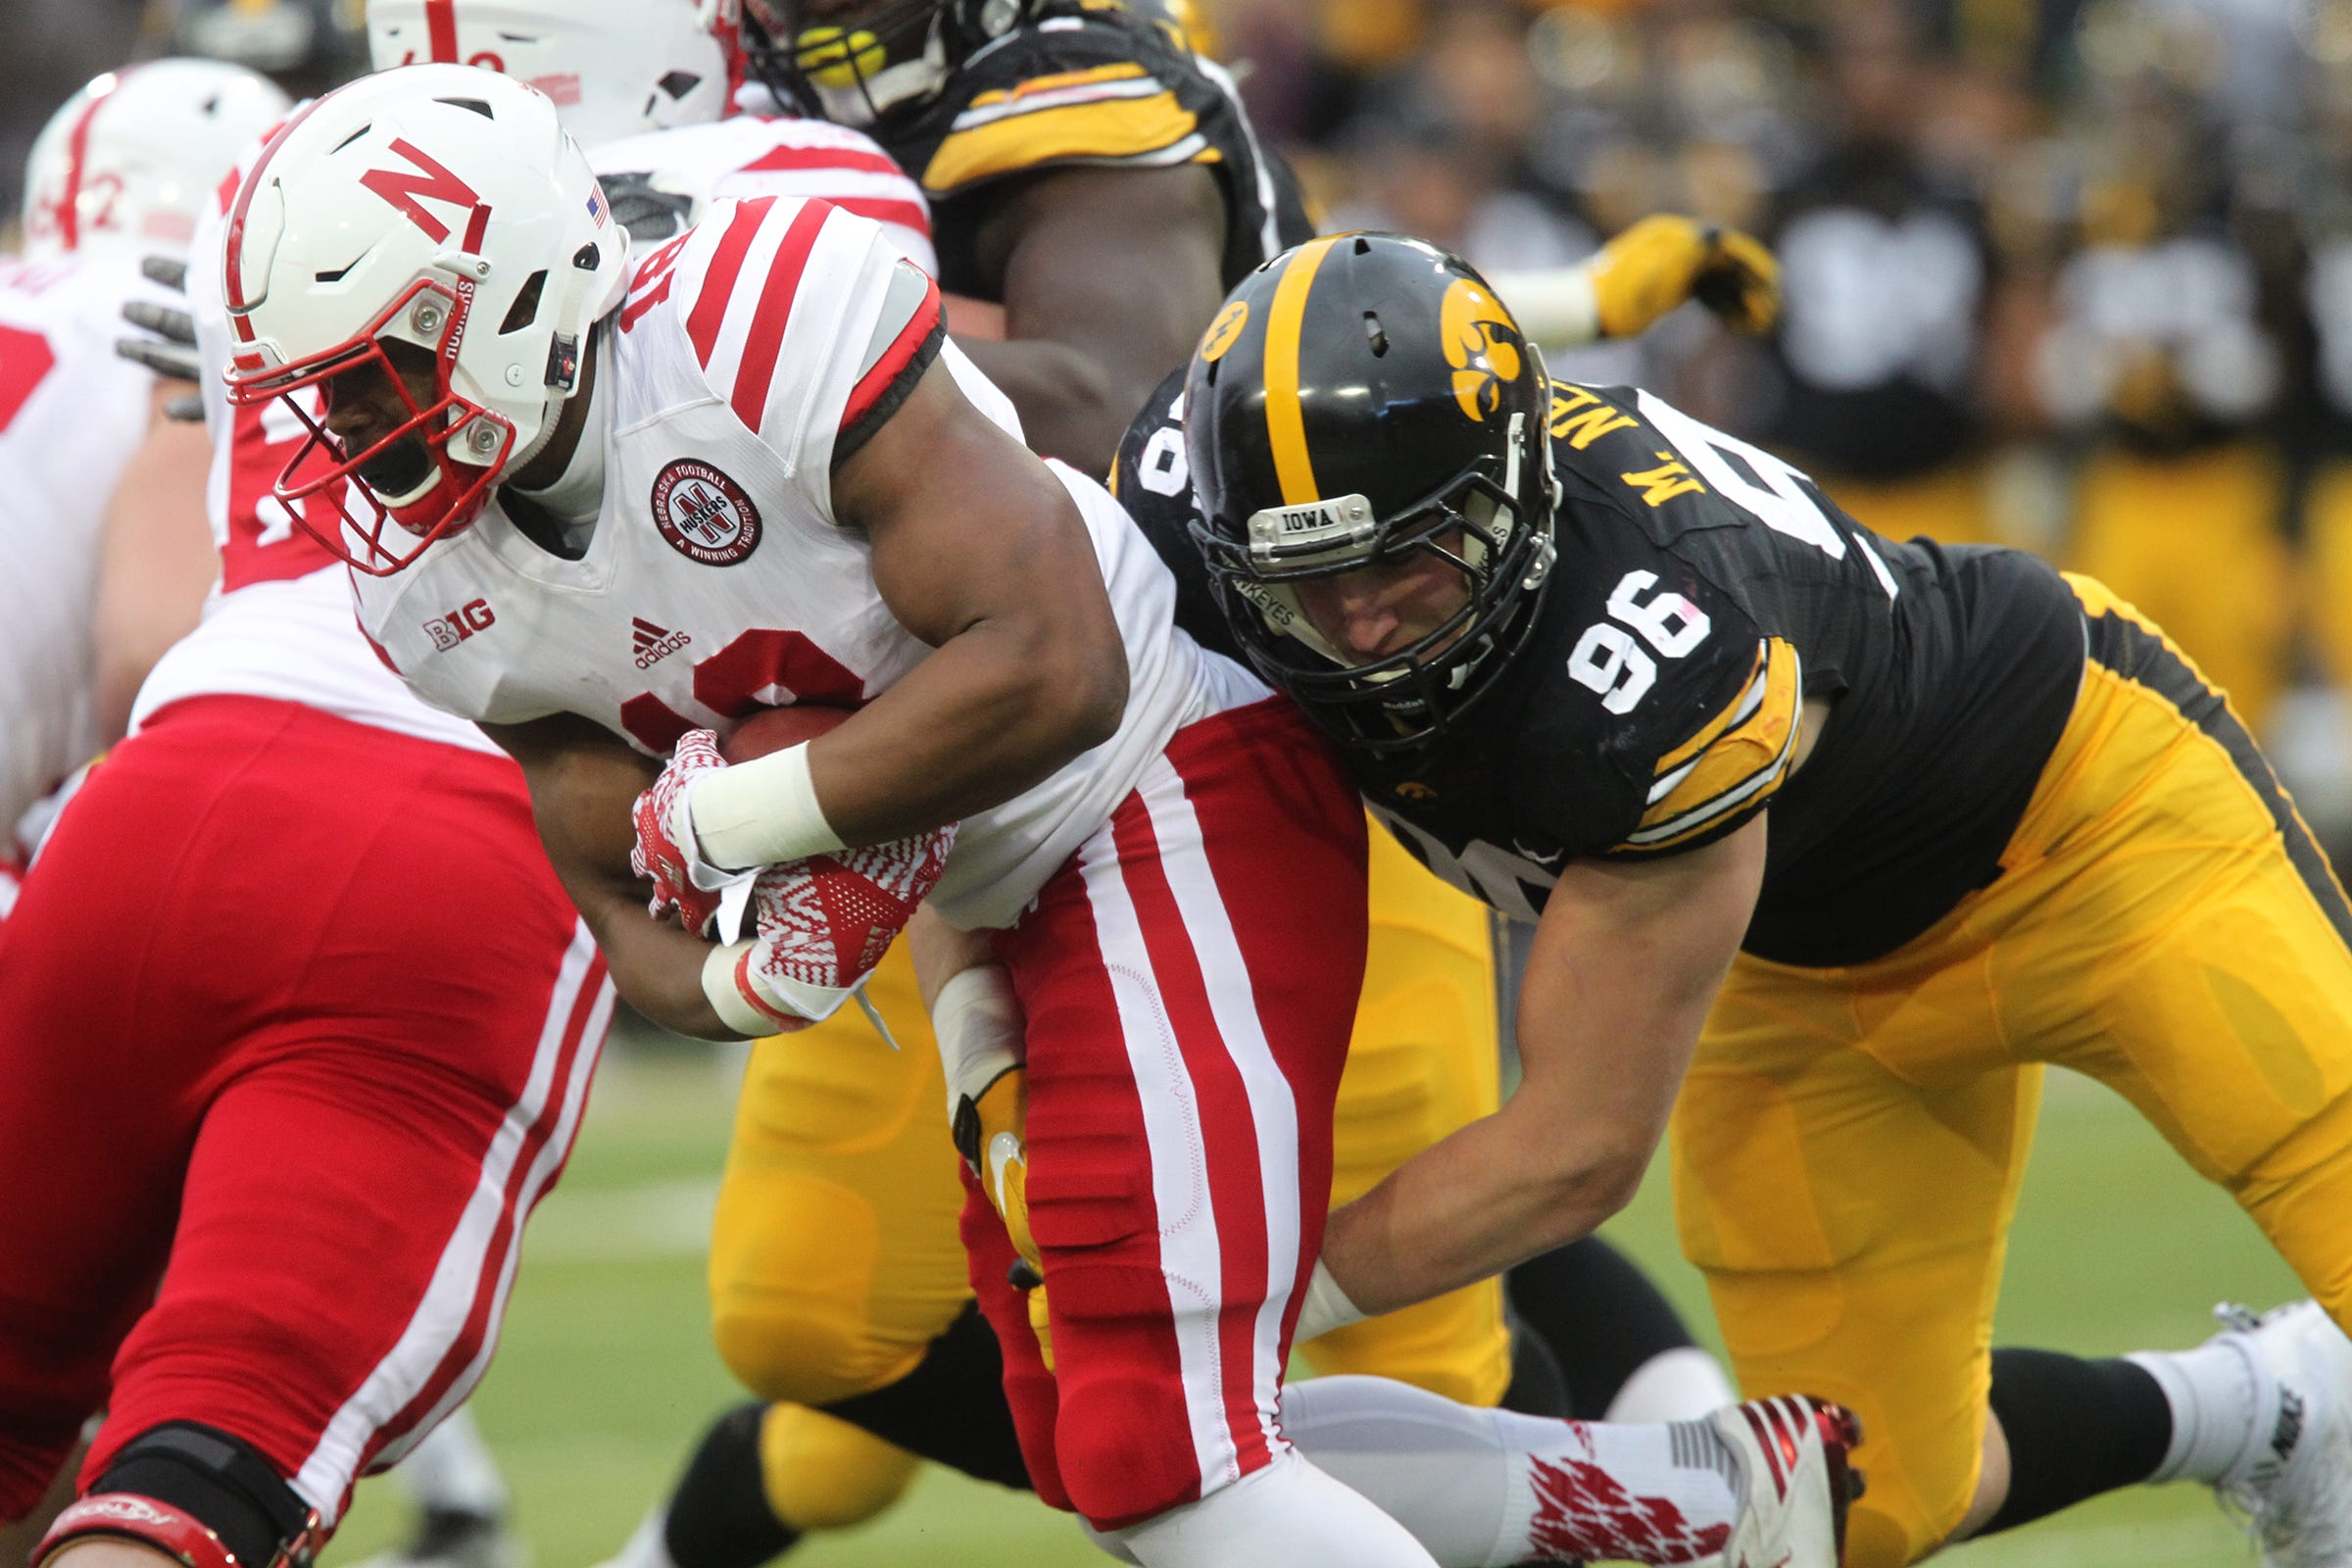 Takeaways: Iowa defensive line injury-riddled, Epenesa excitement and Jewell gets engaged